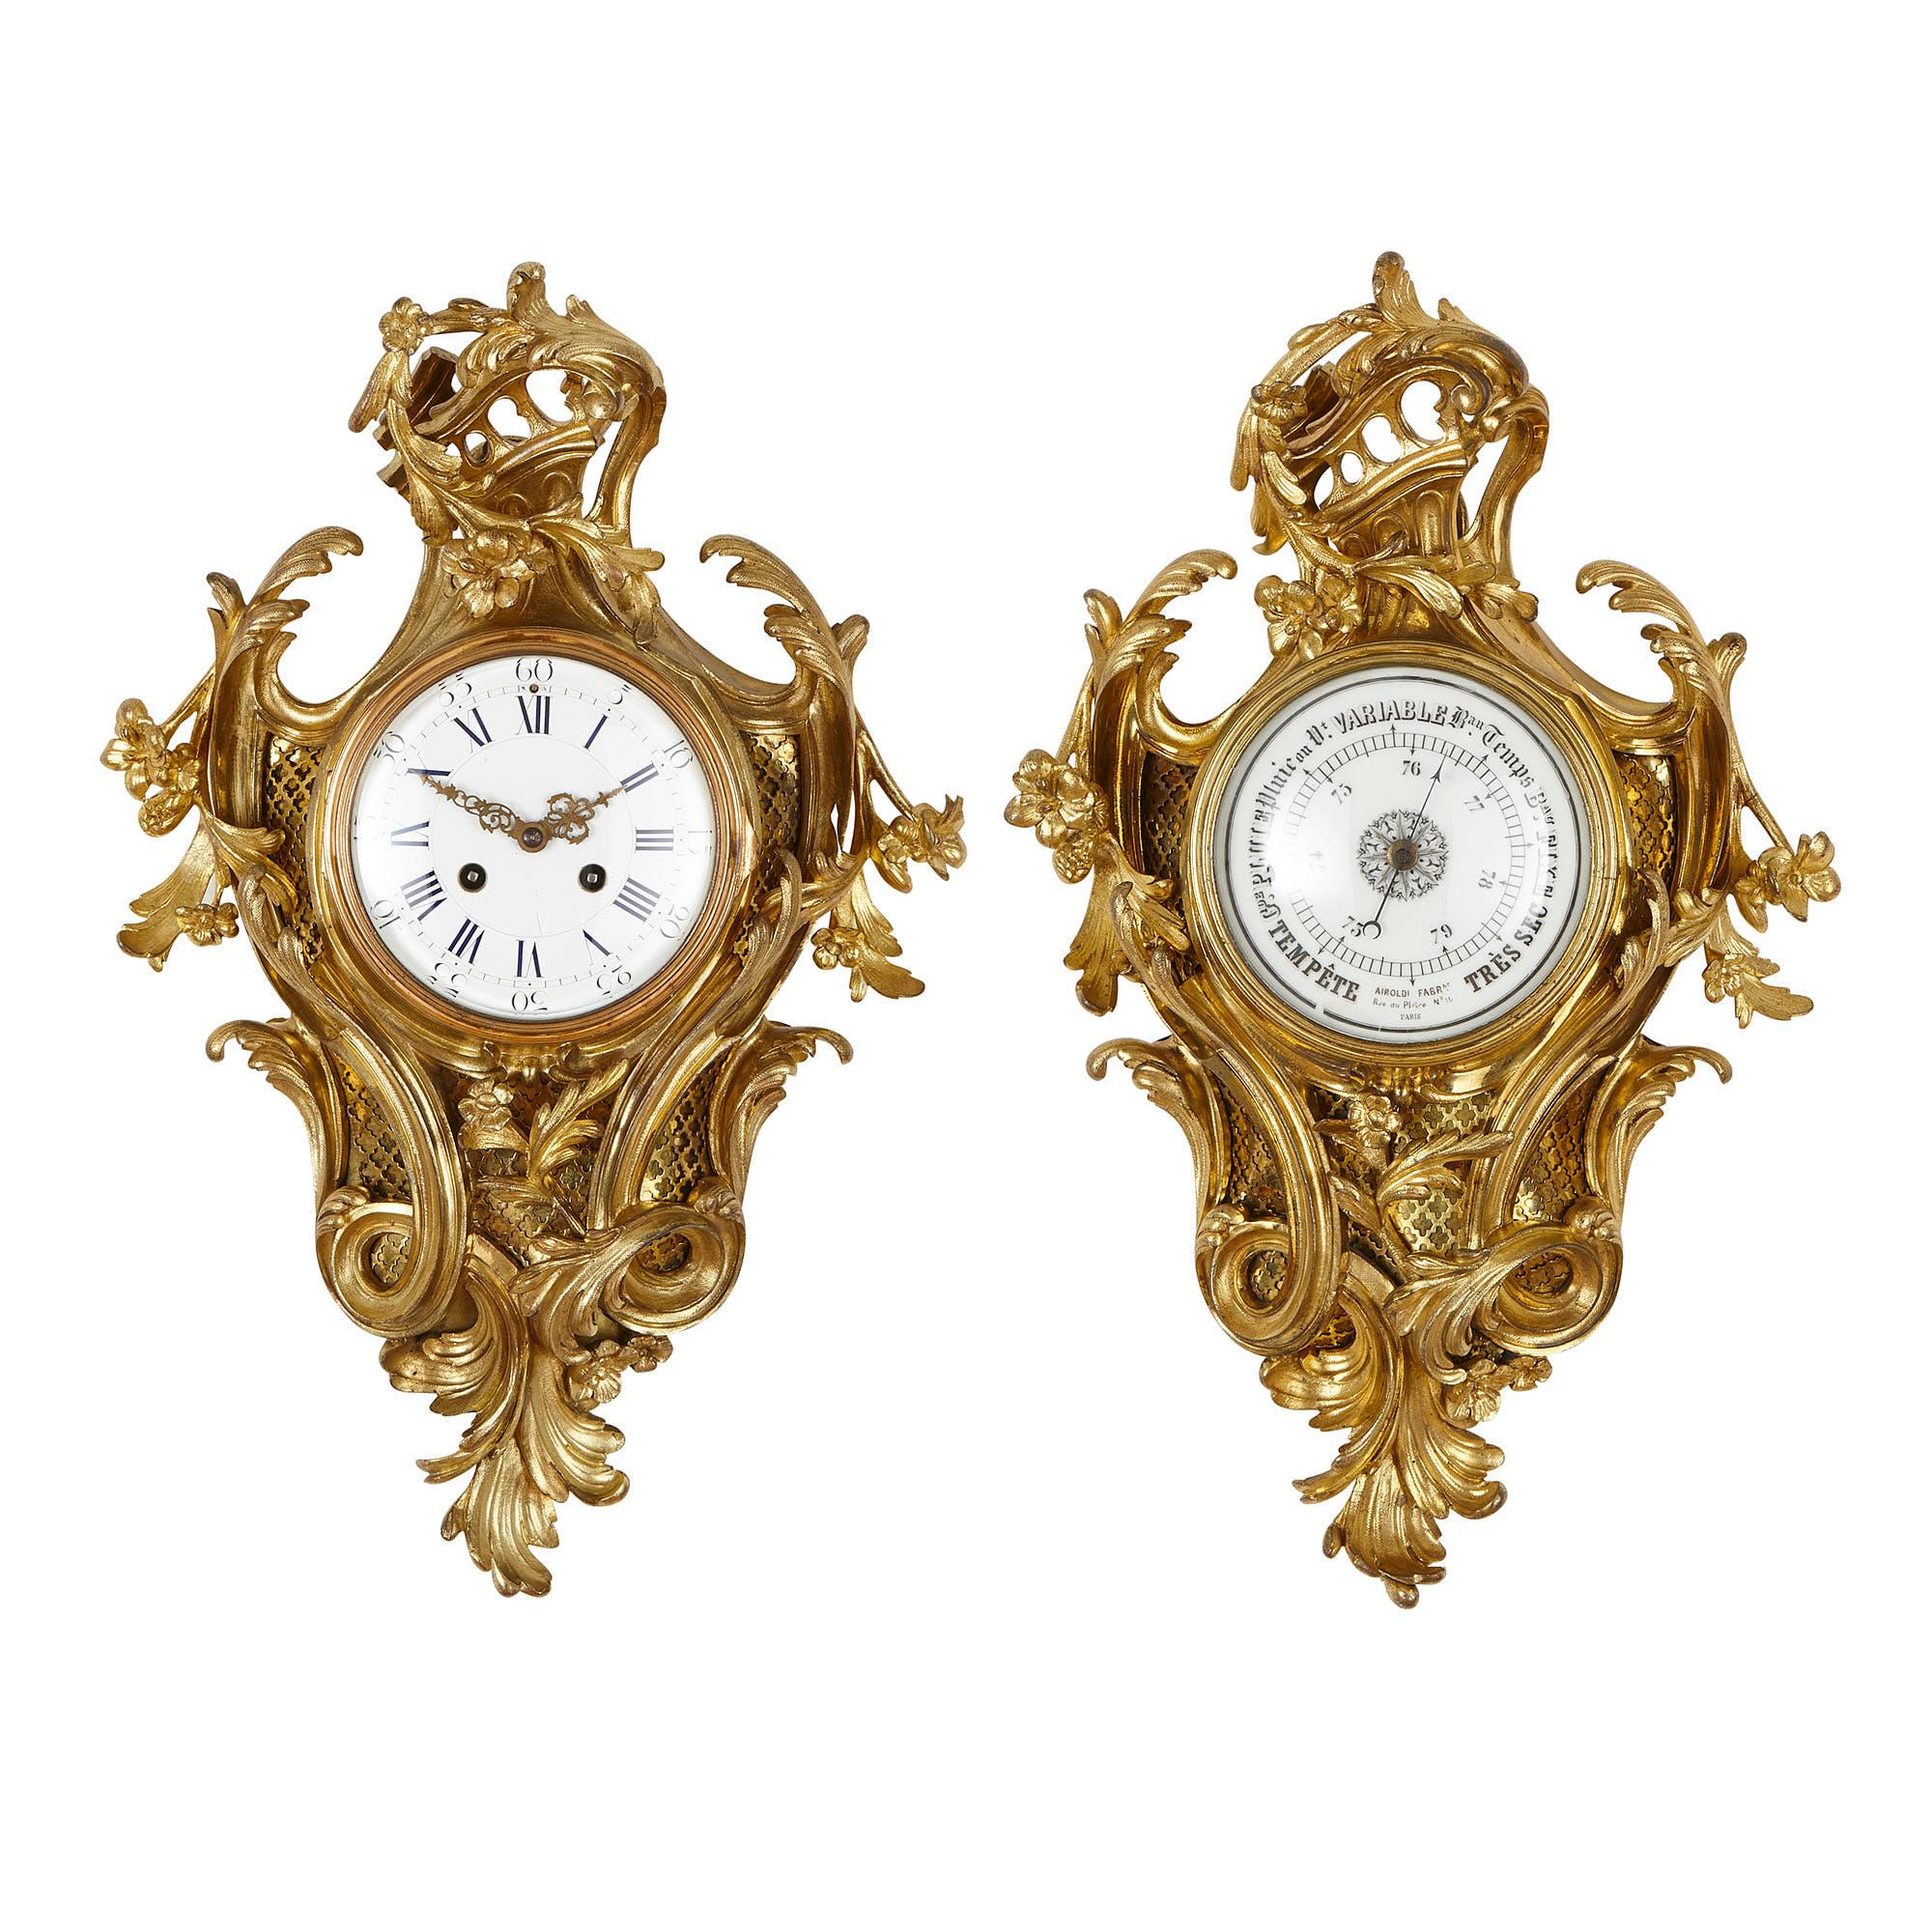 French Rococo Style Gilt Bronze Clock and Barometer by Charpentier